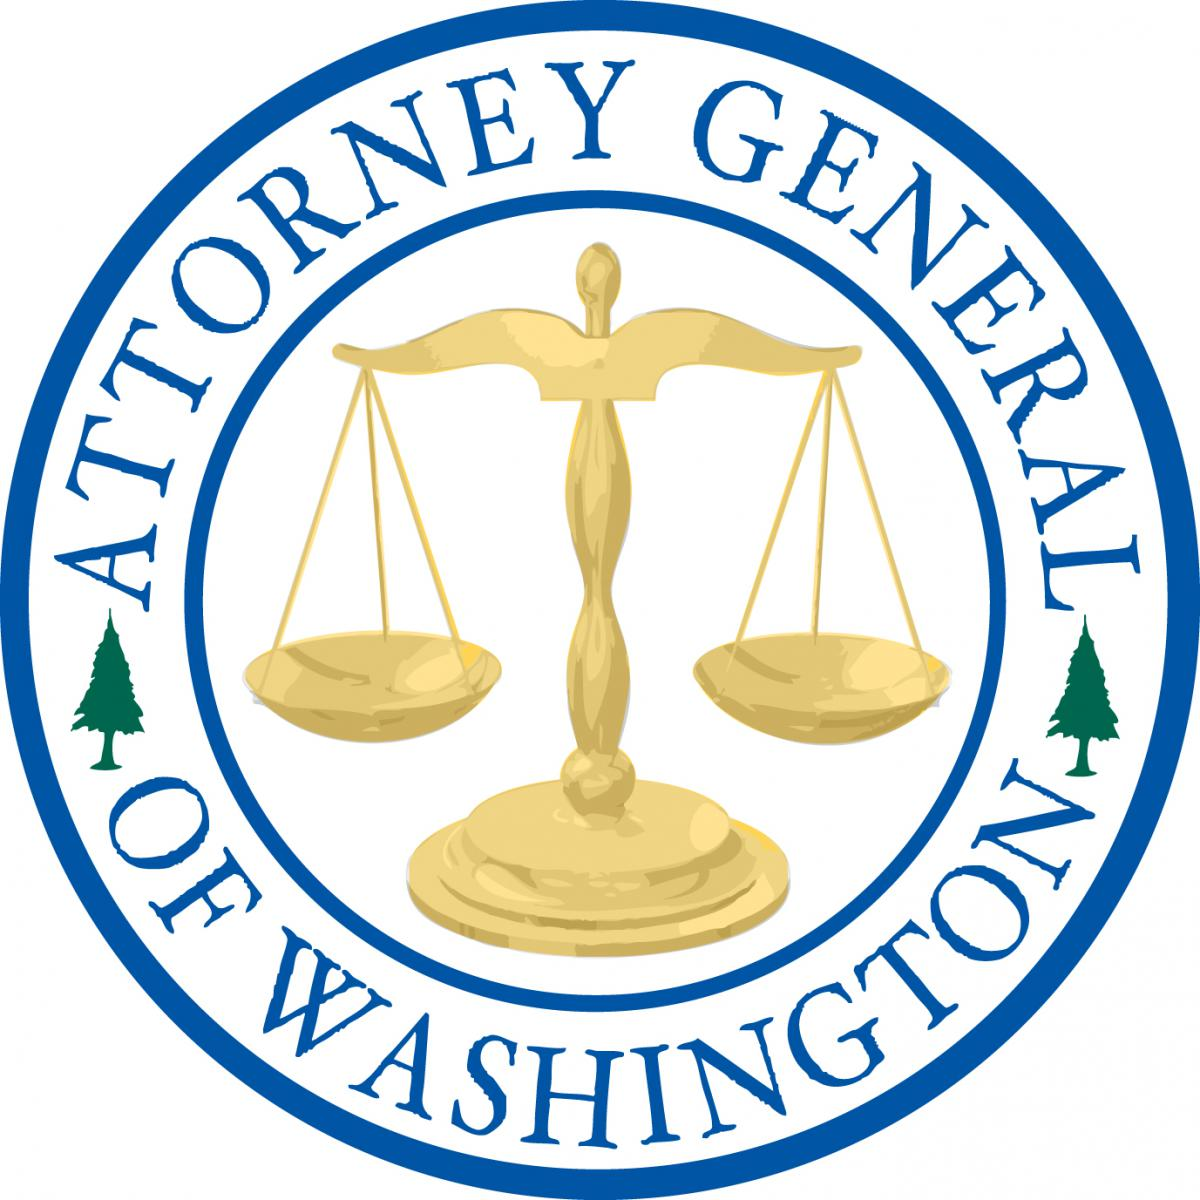 dating law in washington state